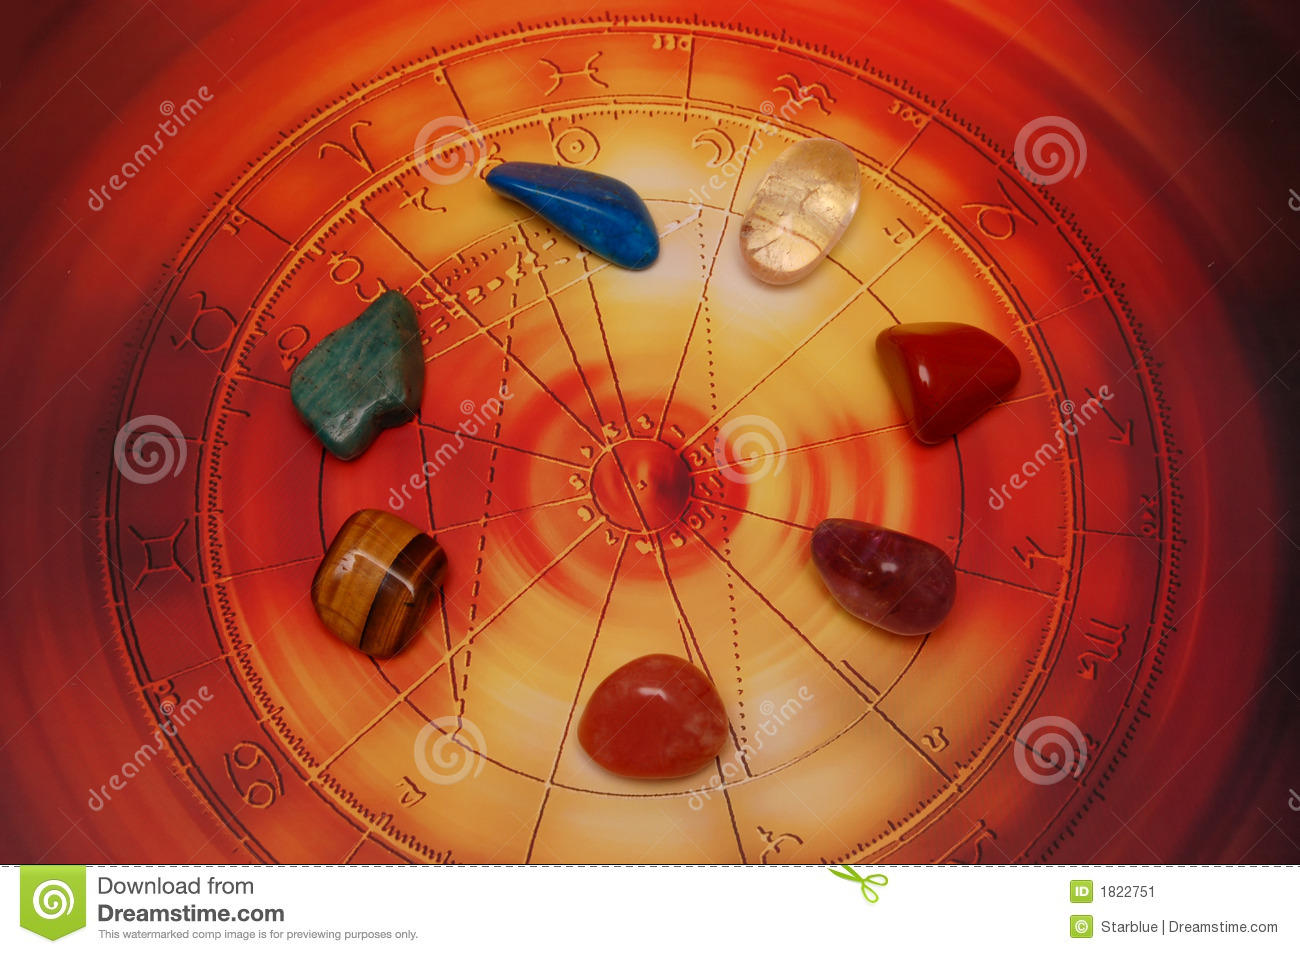 Healing stones stock image  Image of signs, astrological - 1822751